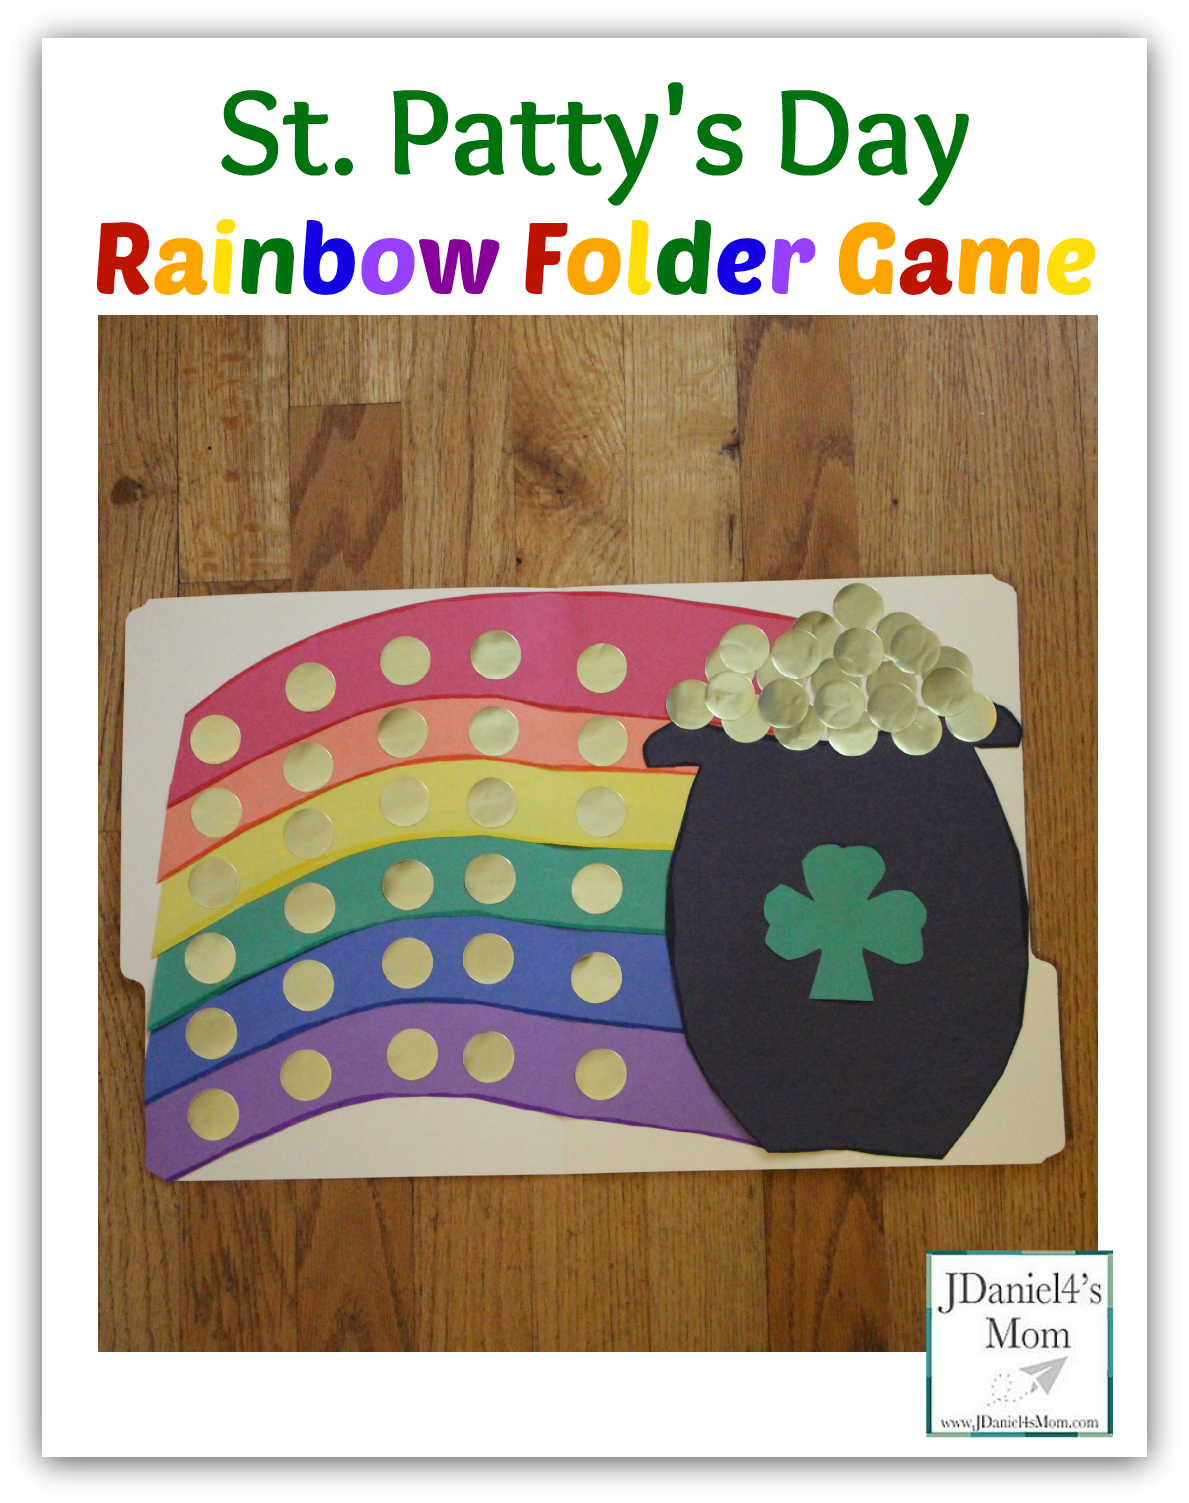 st pattys day rainbow folder game